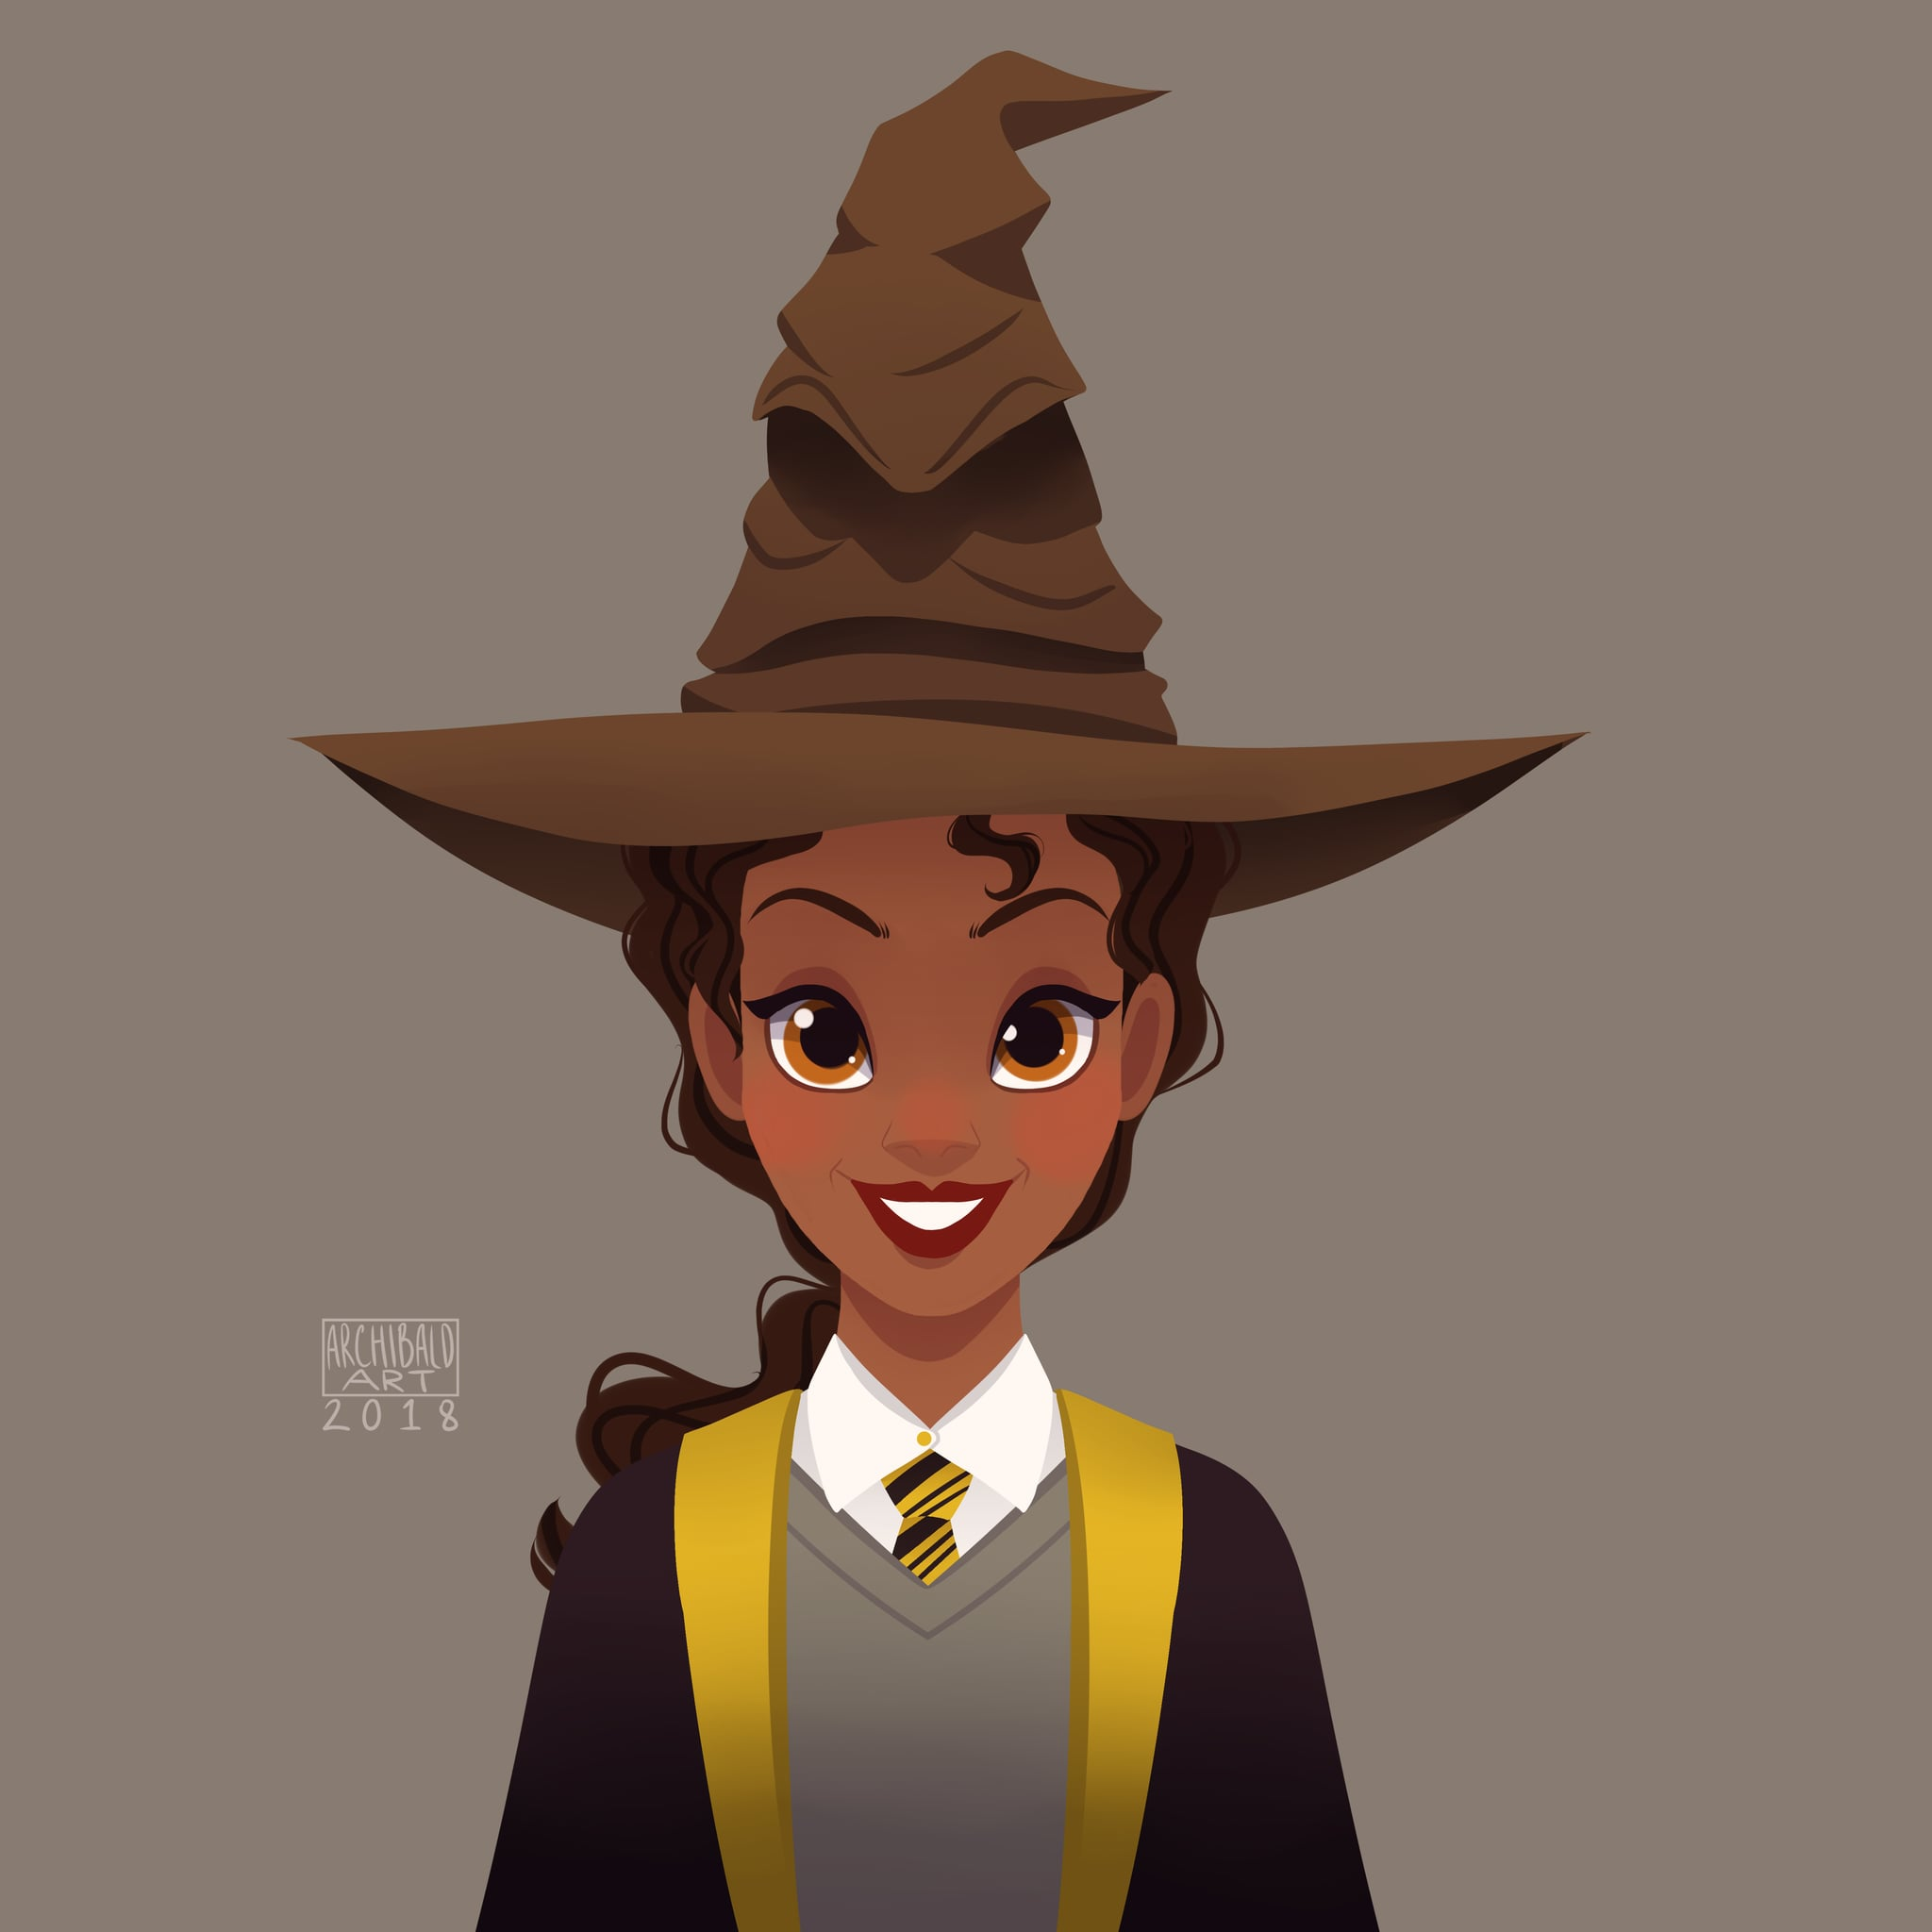 Disney Princesses Sorted Into Hogwarts Houses Artwork Popsugar Smart Living It's a fanfiction i need a four houses for durmstrang. disney princesses sorted into hogwarts